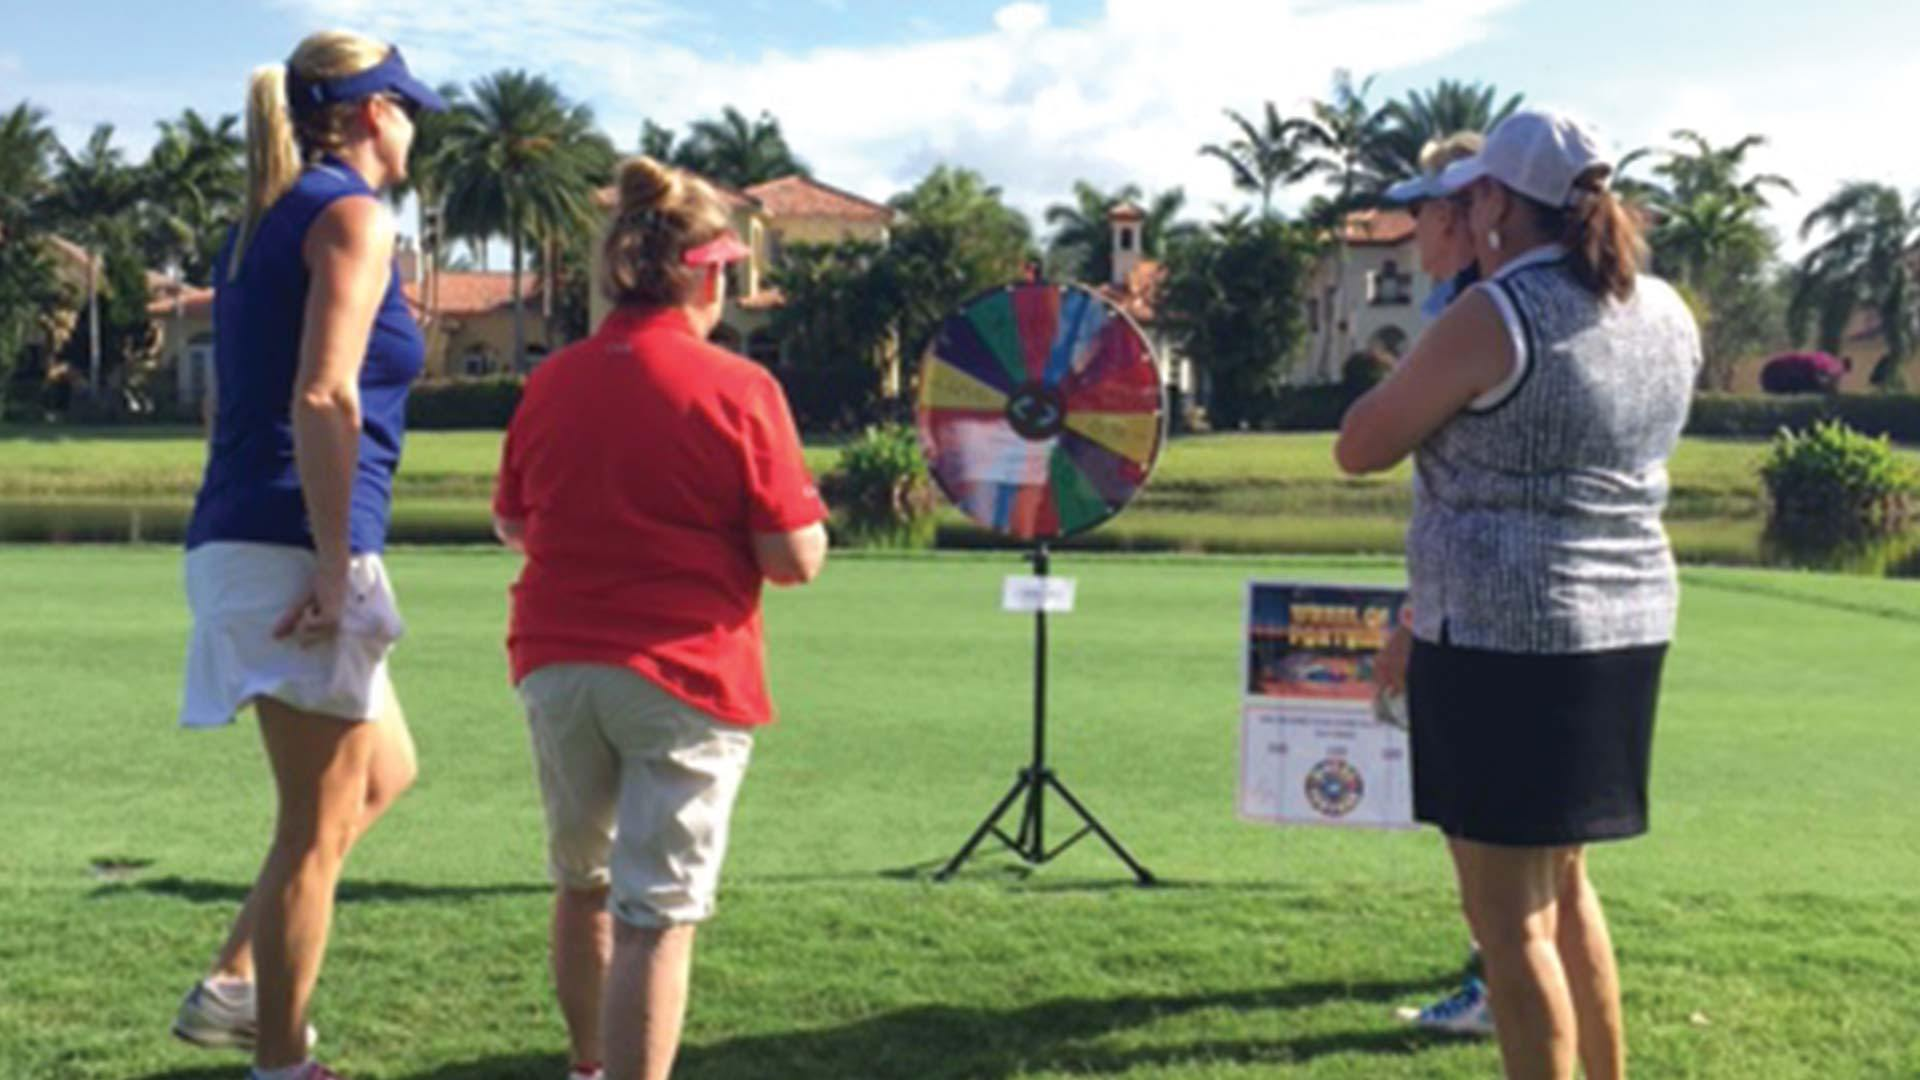 mizner-country-club-delray-beach-golf-images-11